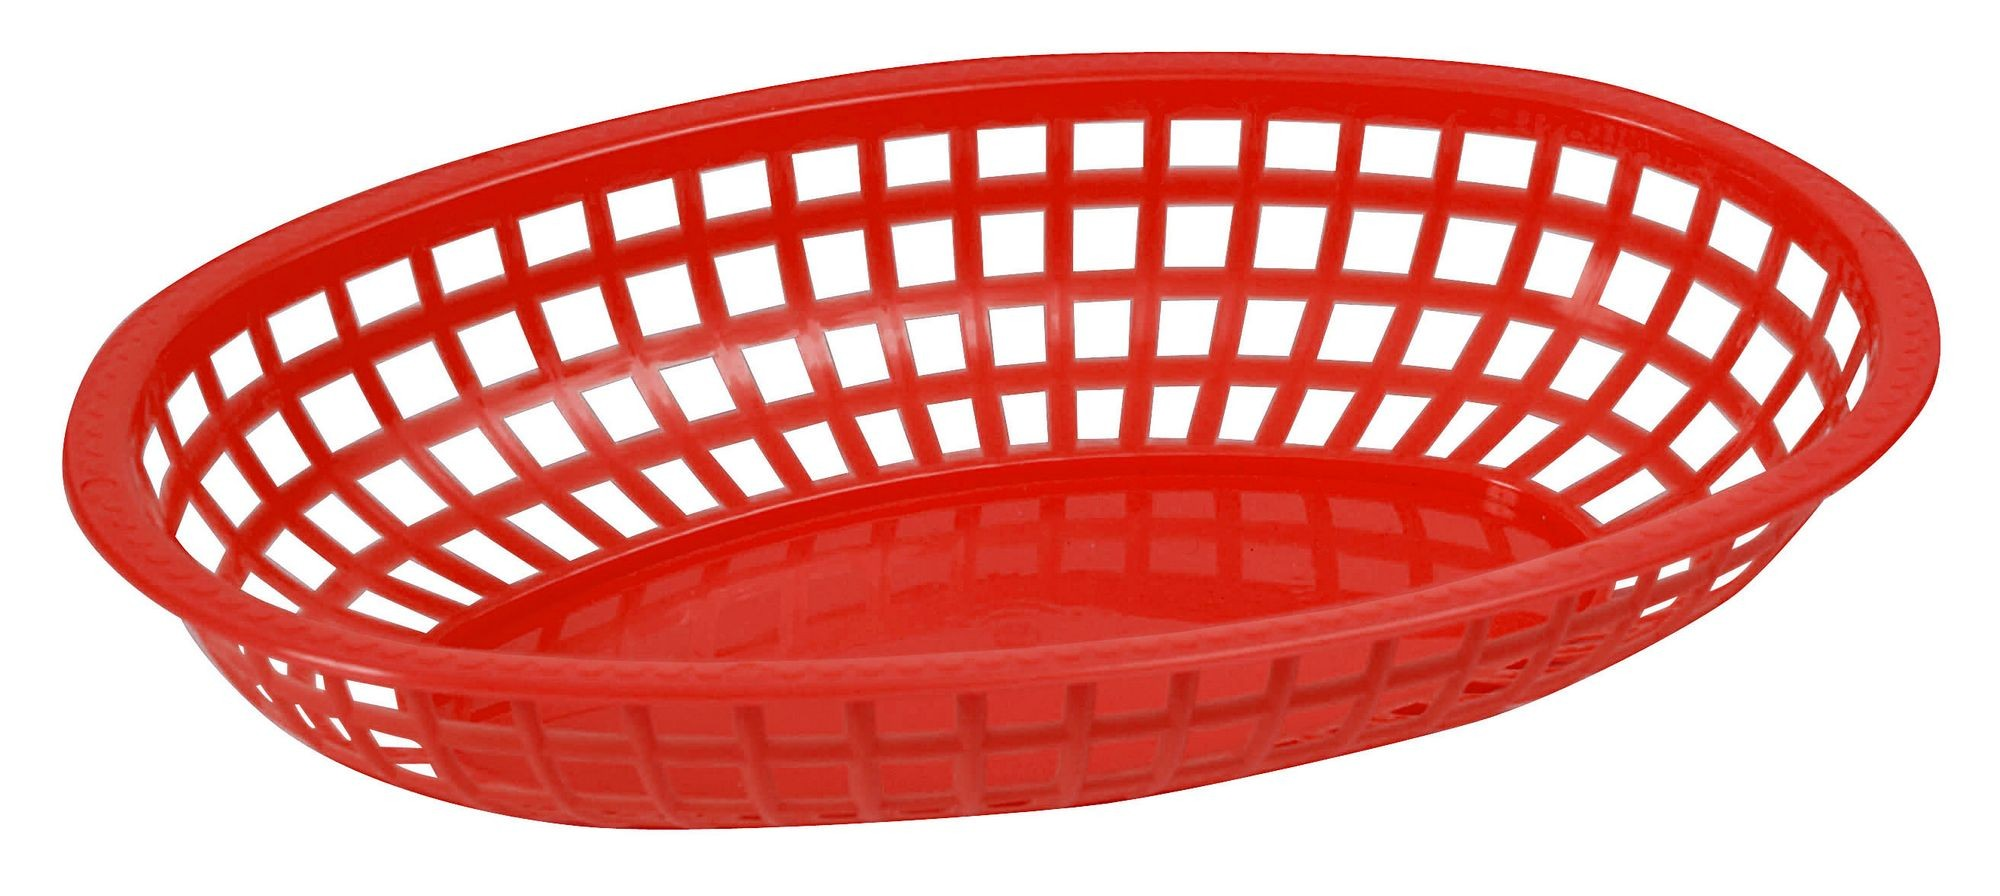 Premium Oval Basket - Scarlet Red